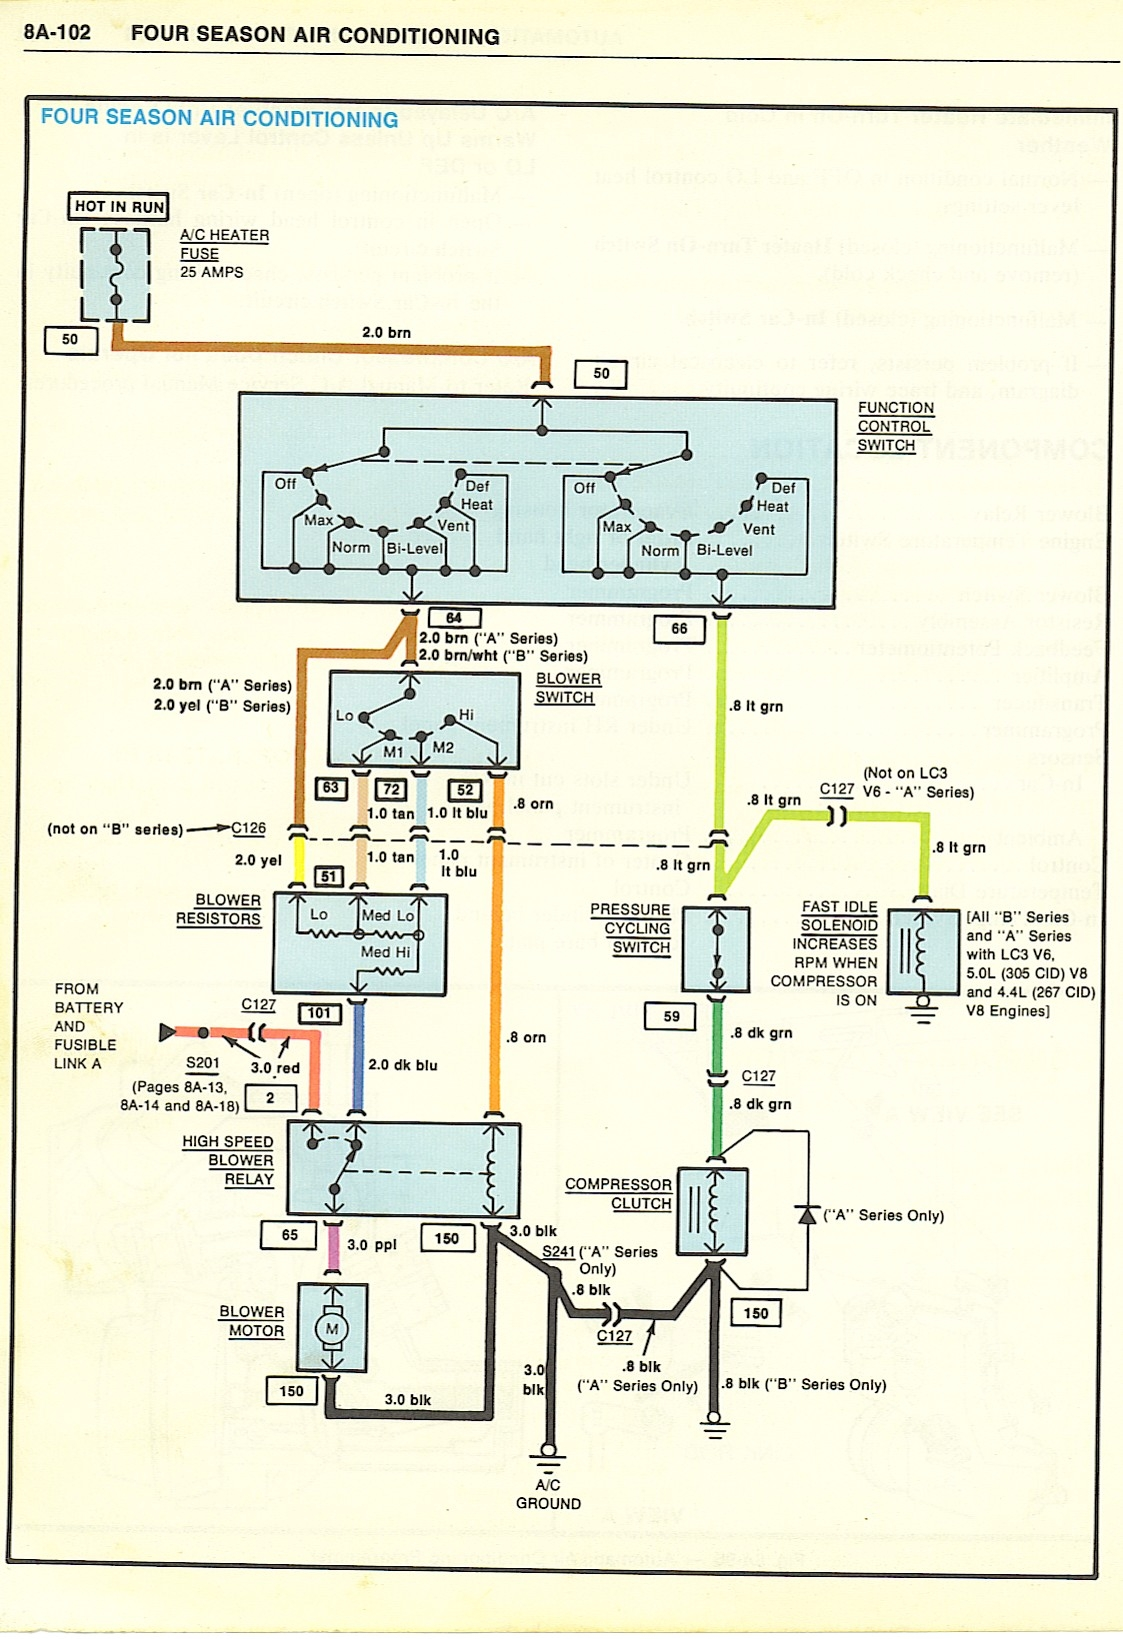 69 Camaro Power Window Wiring Diagram Library Chevy Astro Van For Drawing A 1969 Chevelle Diagrams